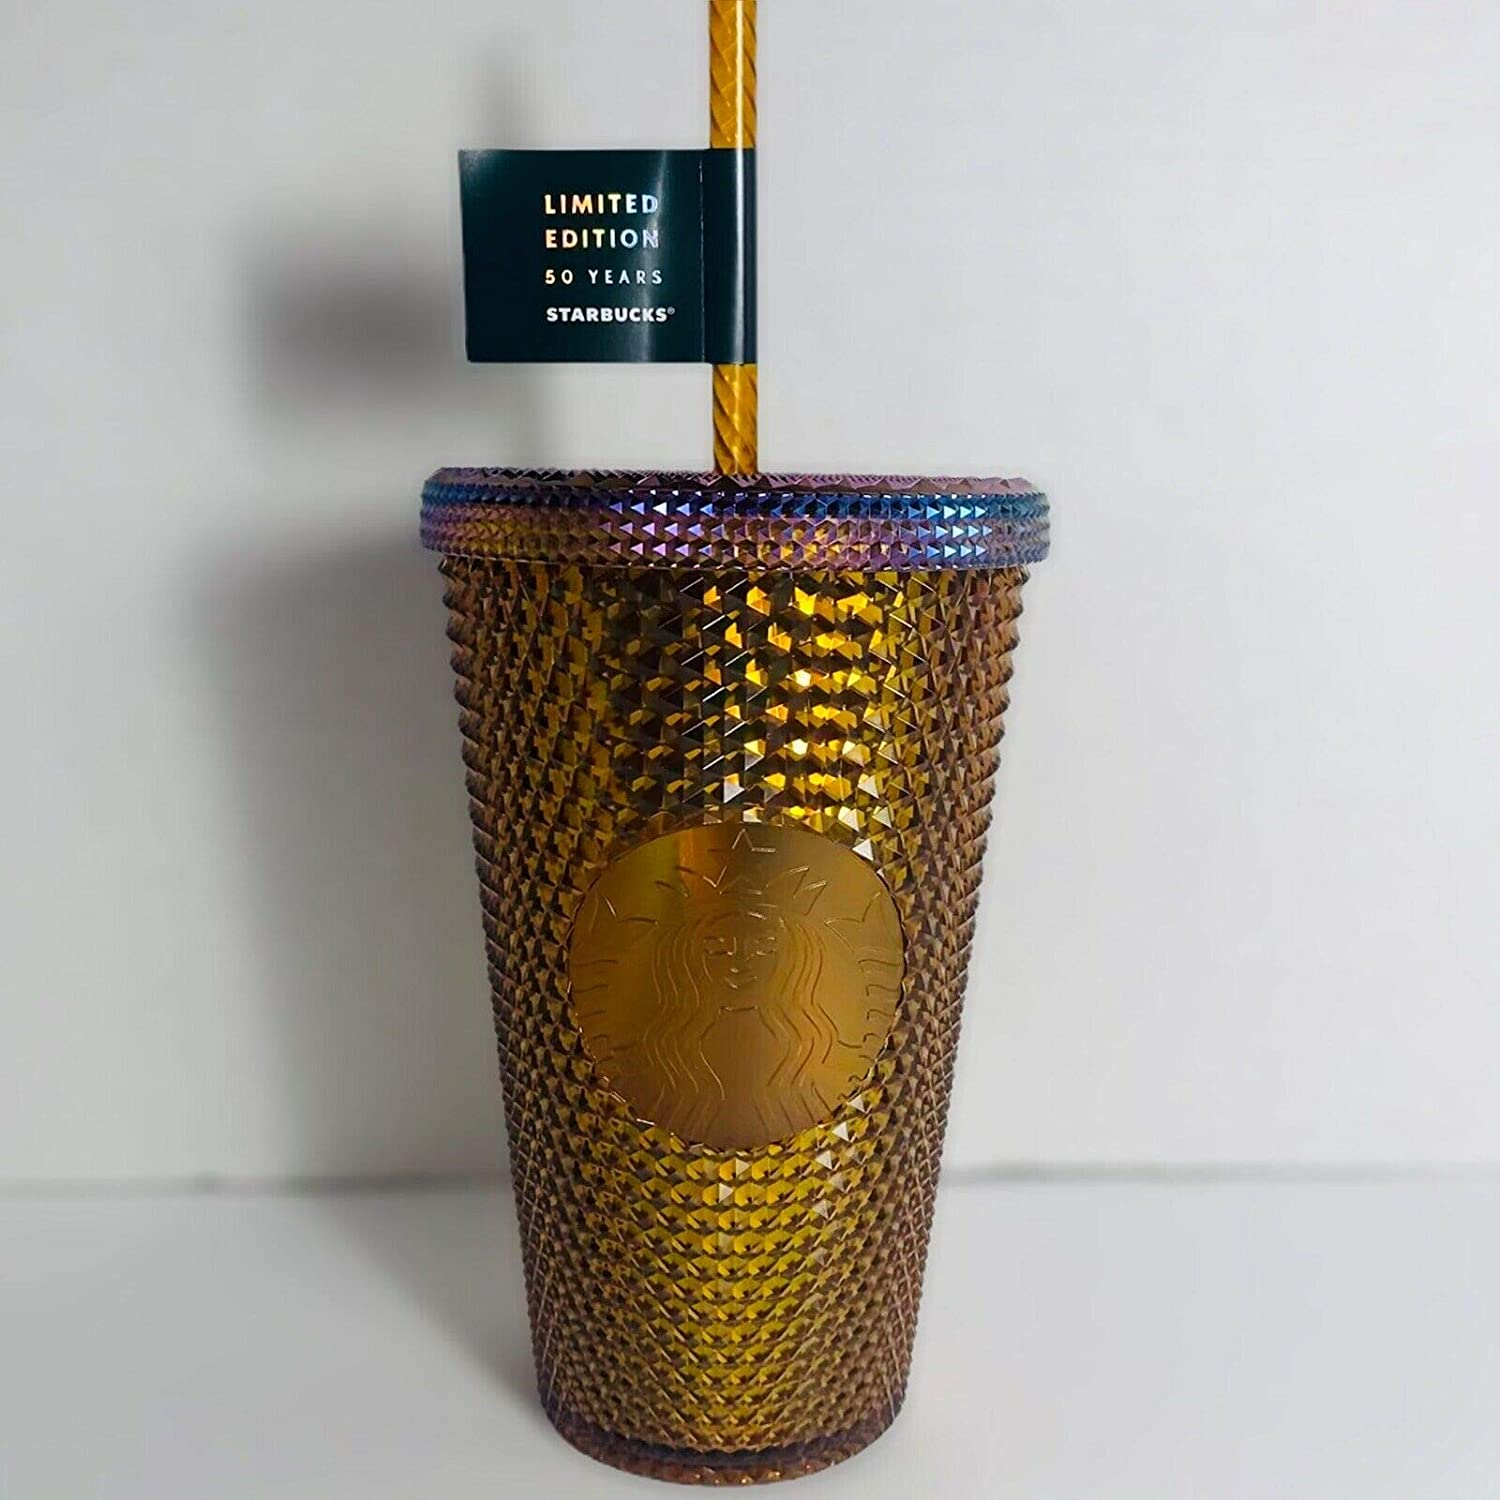 Starbucks 50th Anniversary Limited Edition Studded 16oz Copper Sales of SALE items from new works T Oakland Mall